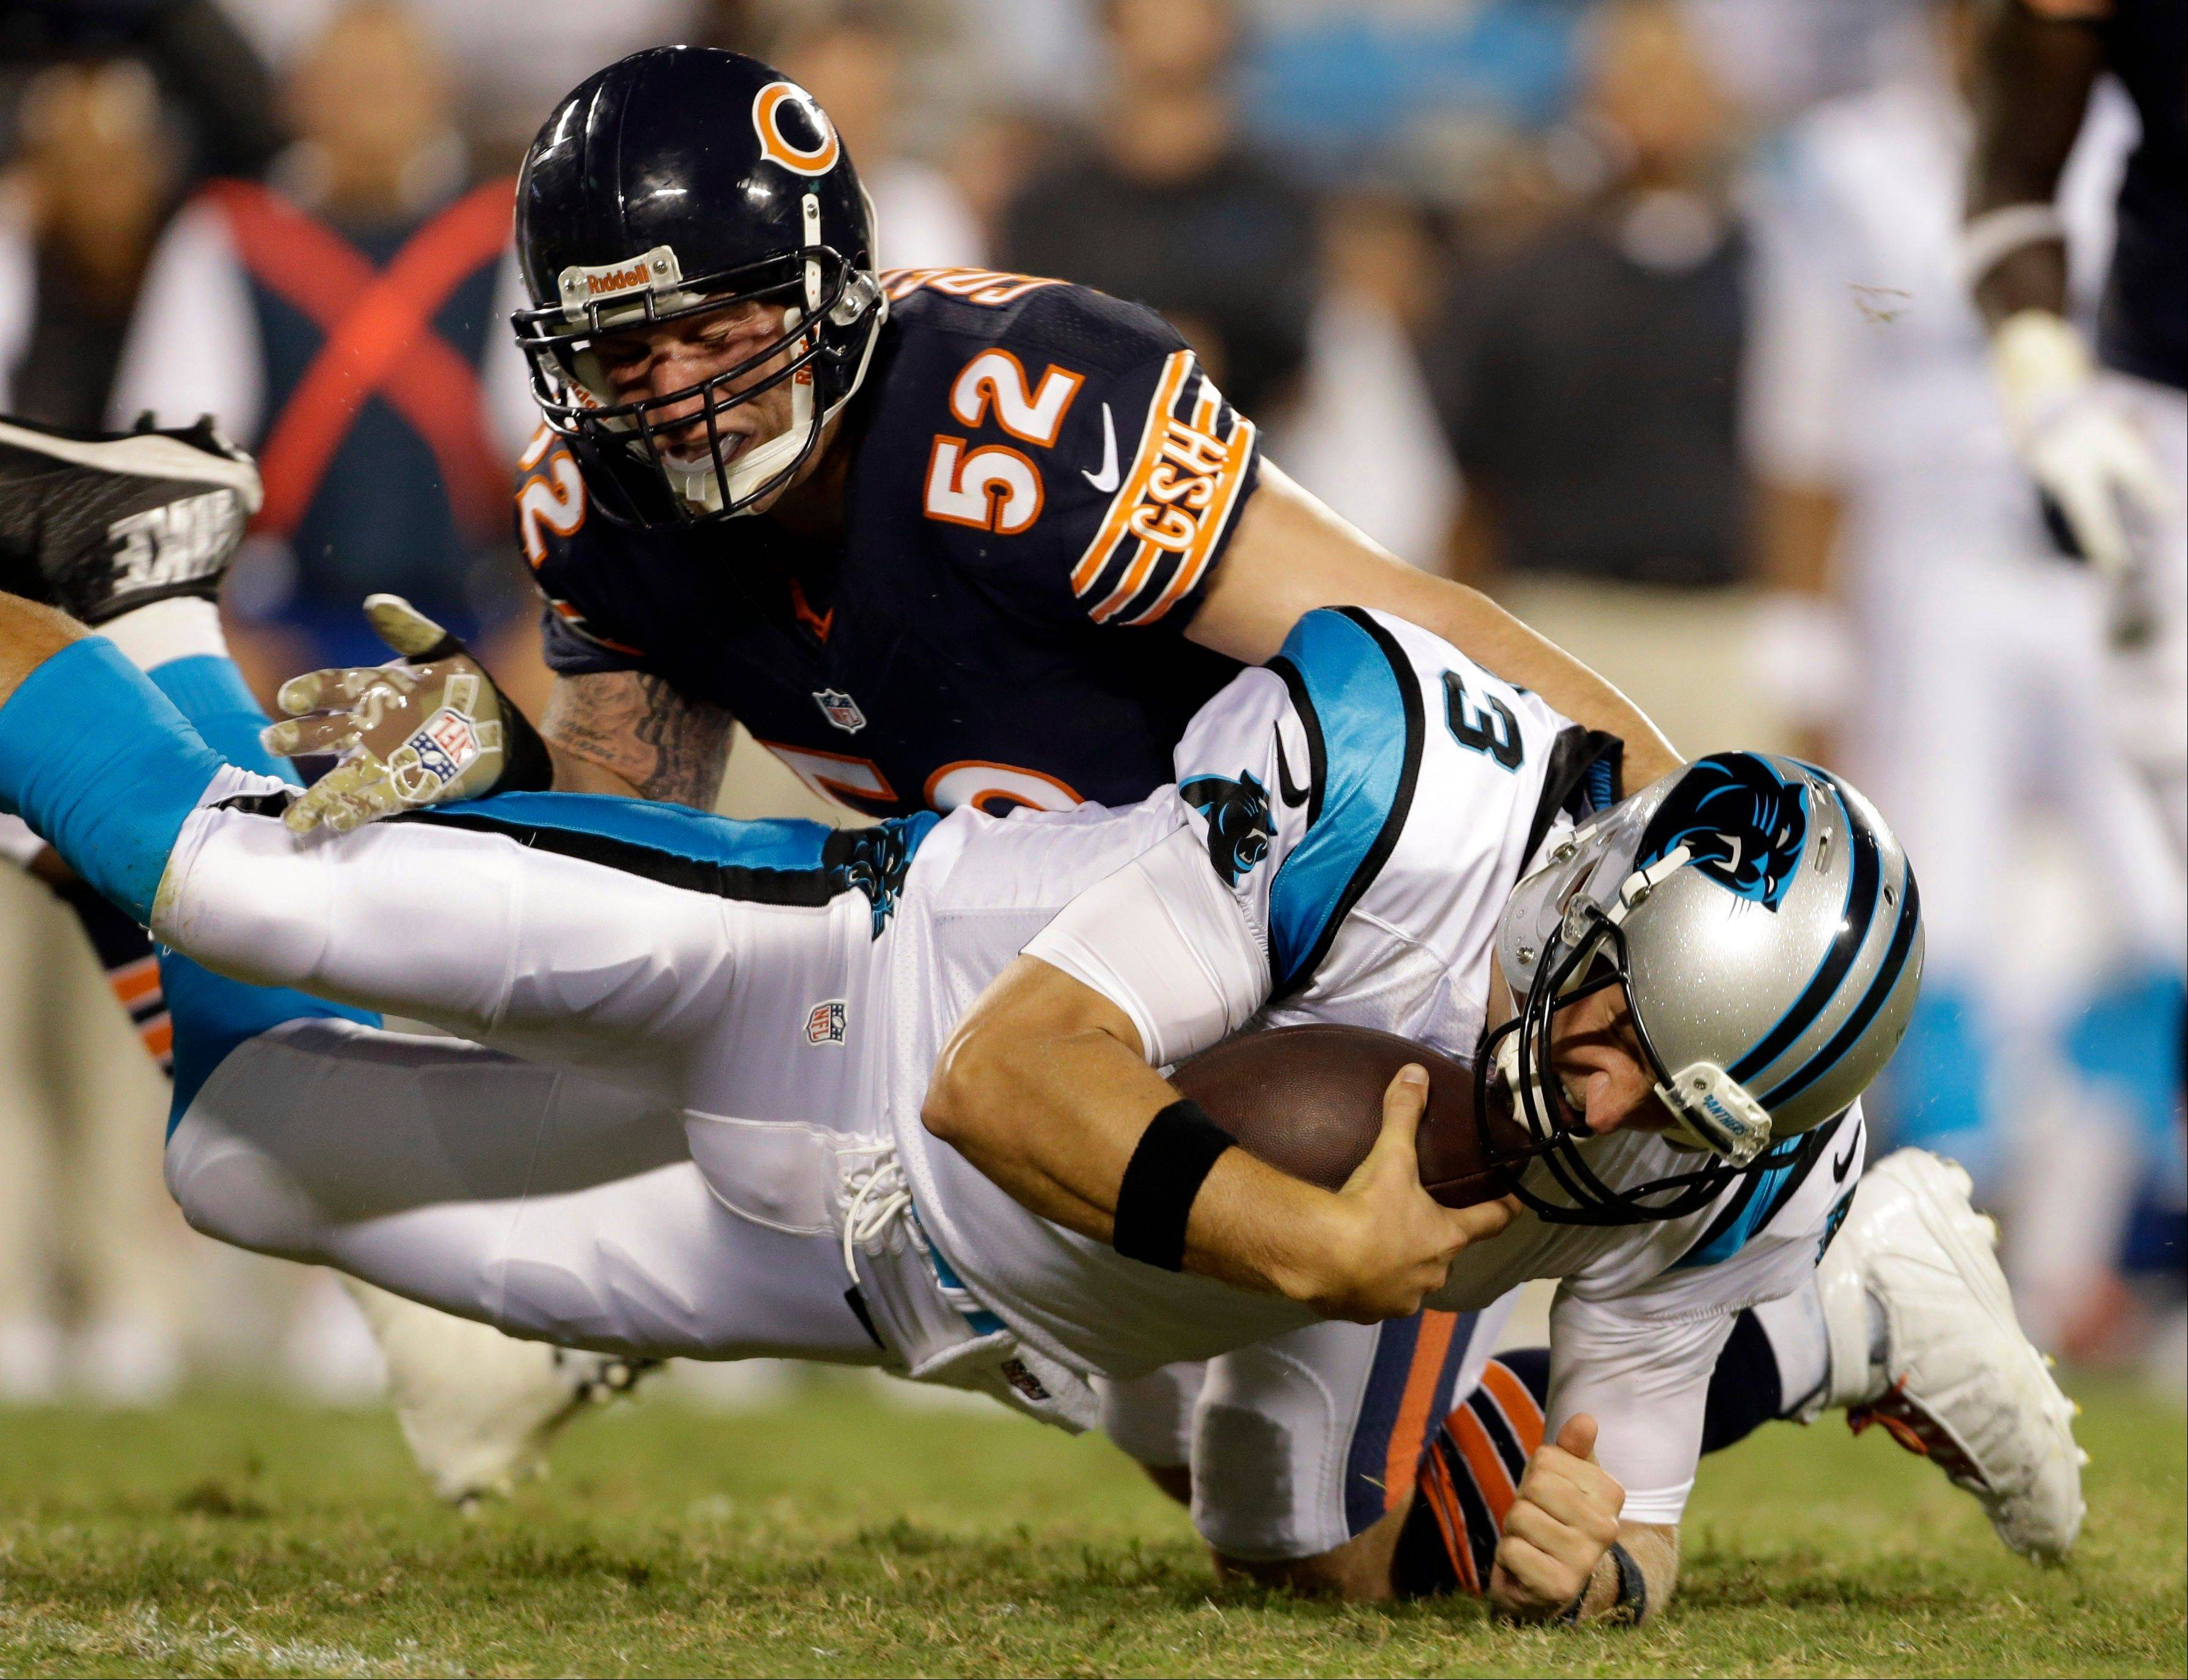 Carolina Panthers' Derek Anderson (3) is tackled by Chicago Bears' Blake Costanzo (52) during the first half of a preseason NFL football game in Charlotte, N.C., Friday, Aug. 9, 2013.